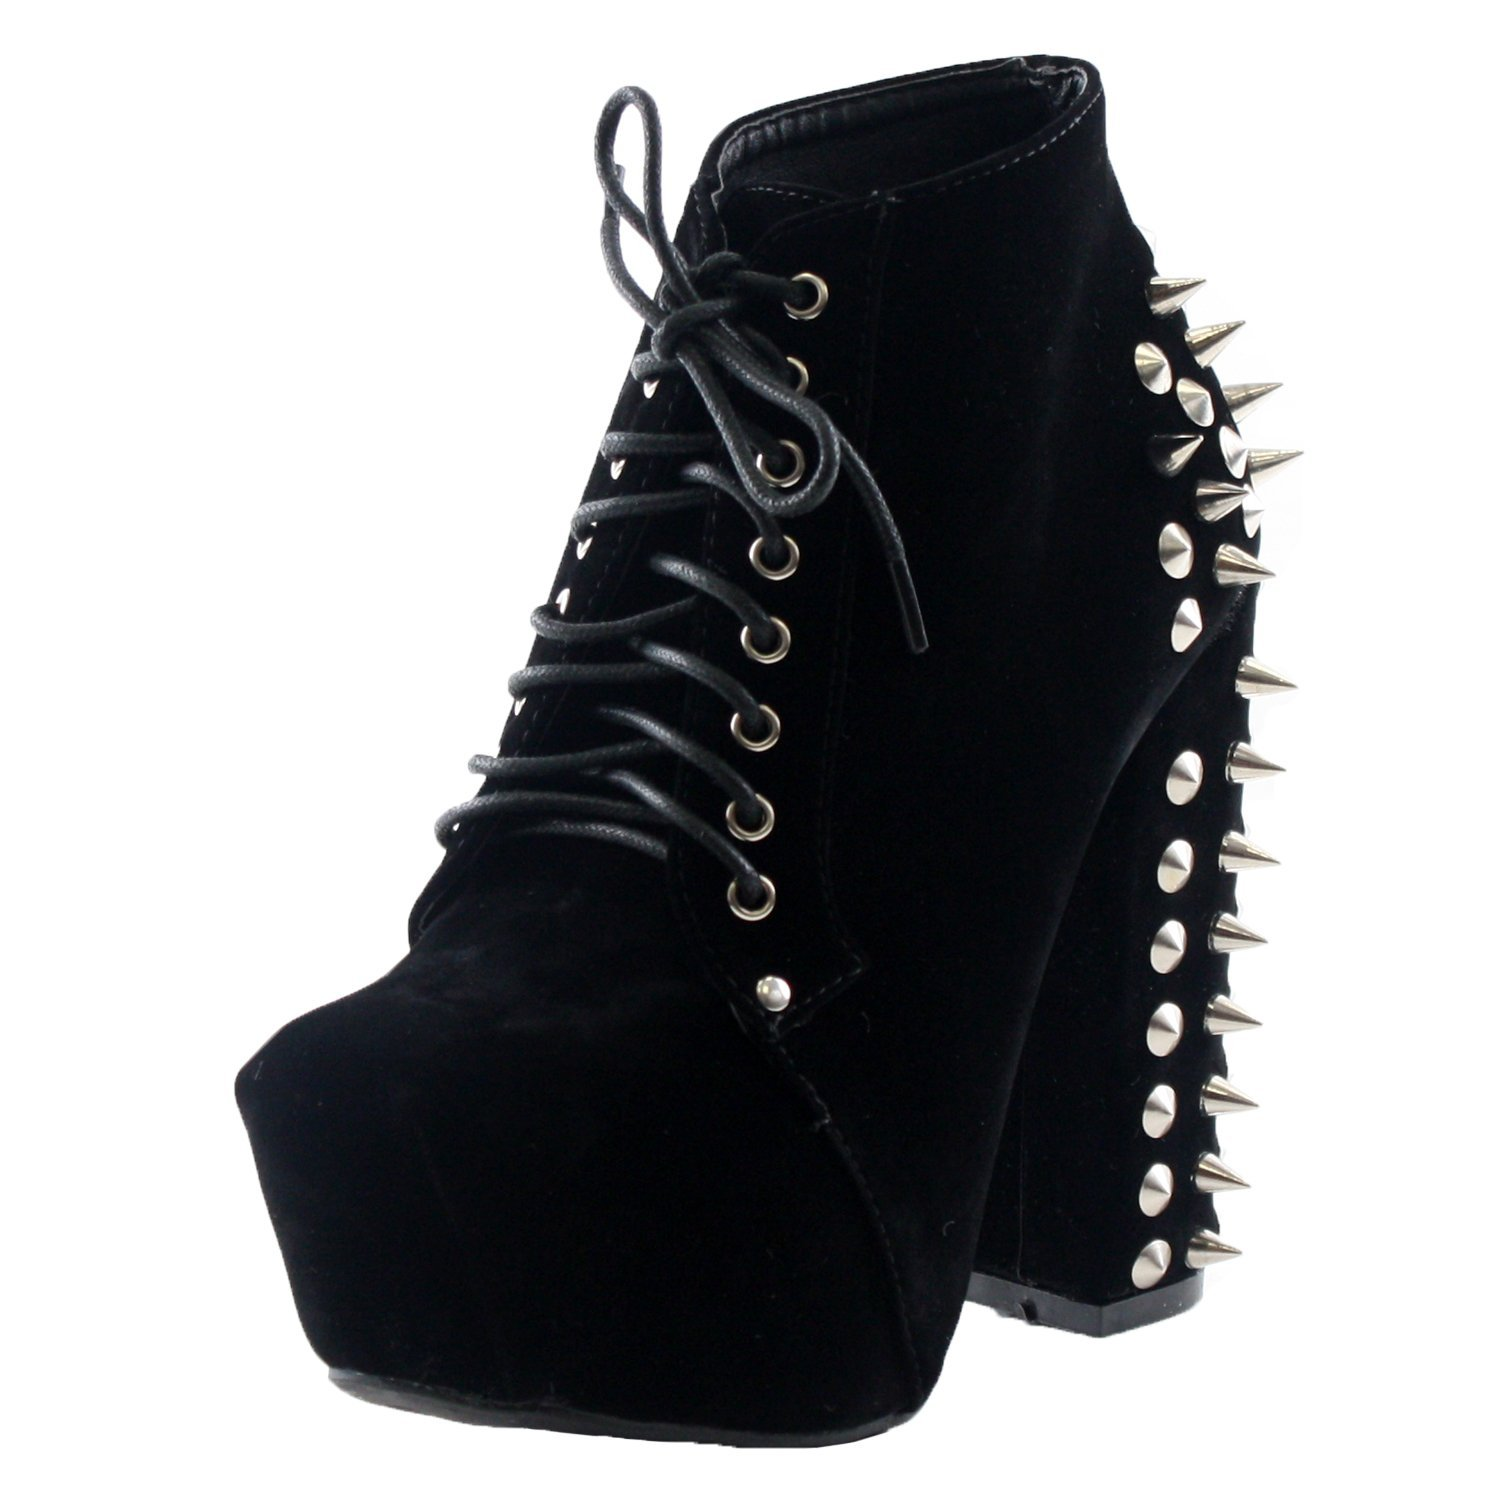 01 bootie boots, black suede, 6.5: shoes